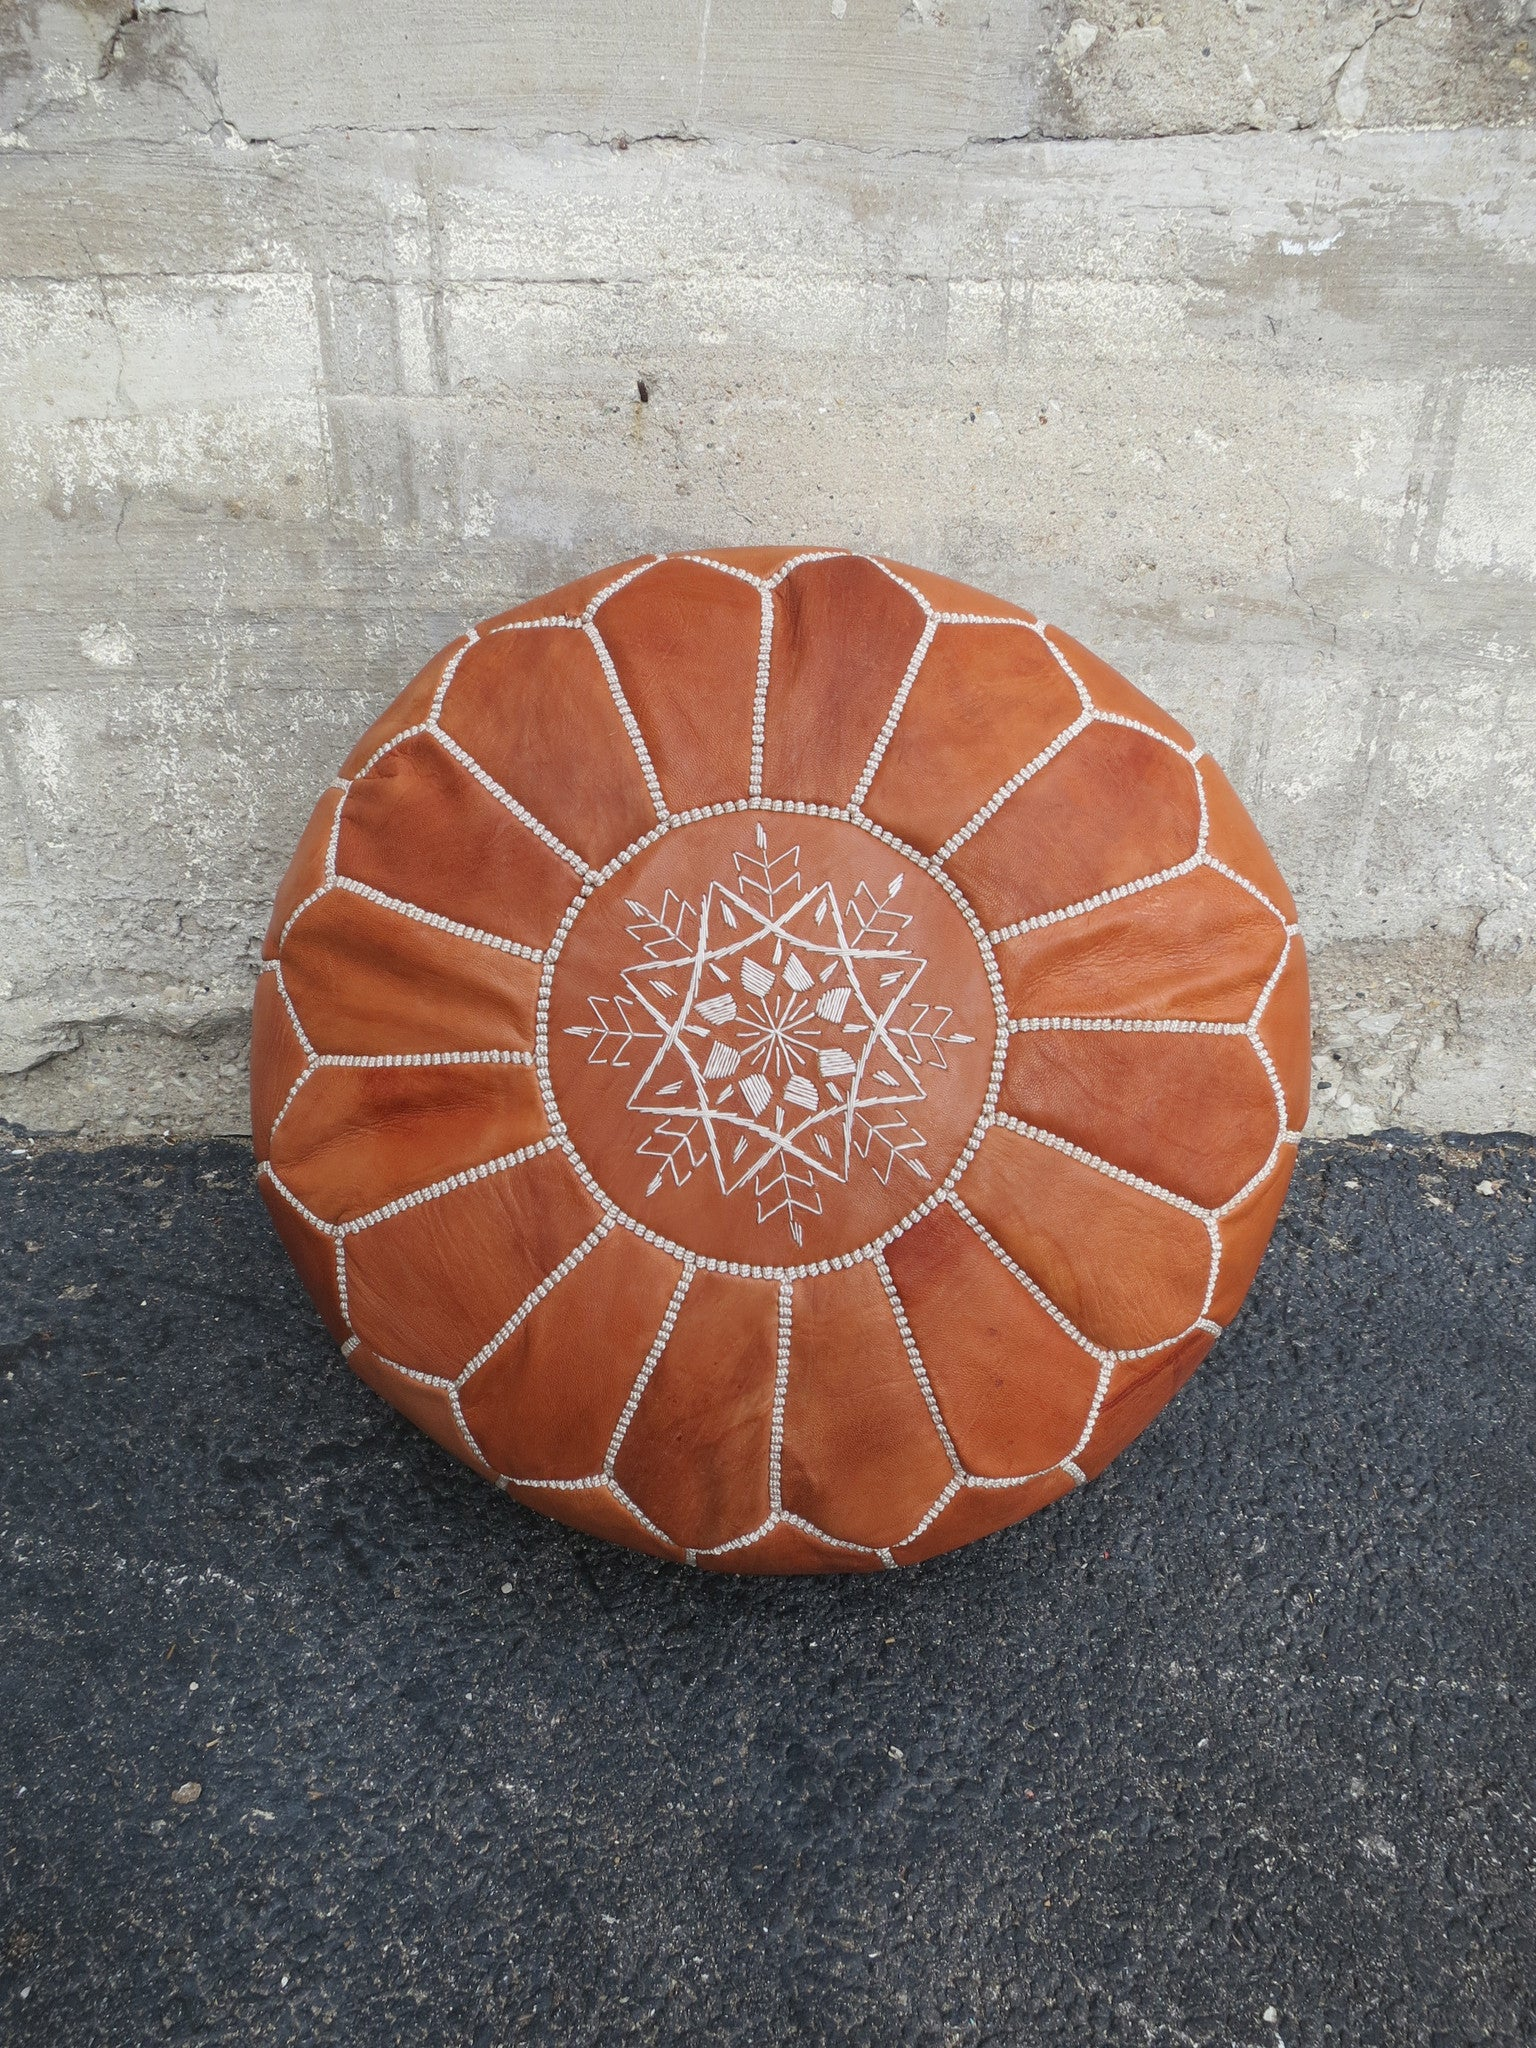 'ALADDIN'S POUF ' MOROCCAN LEATHER FLOOR POUF - Maven Collection